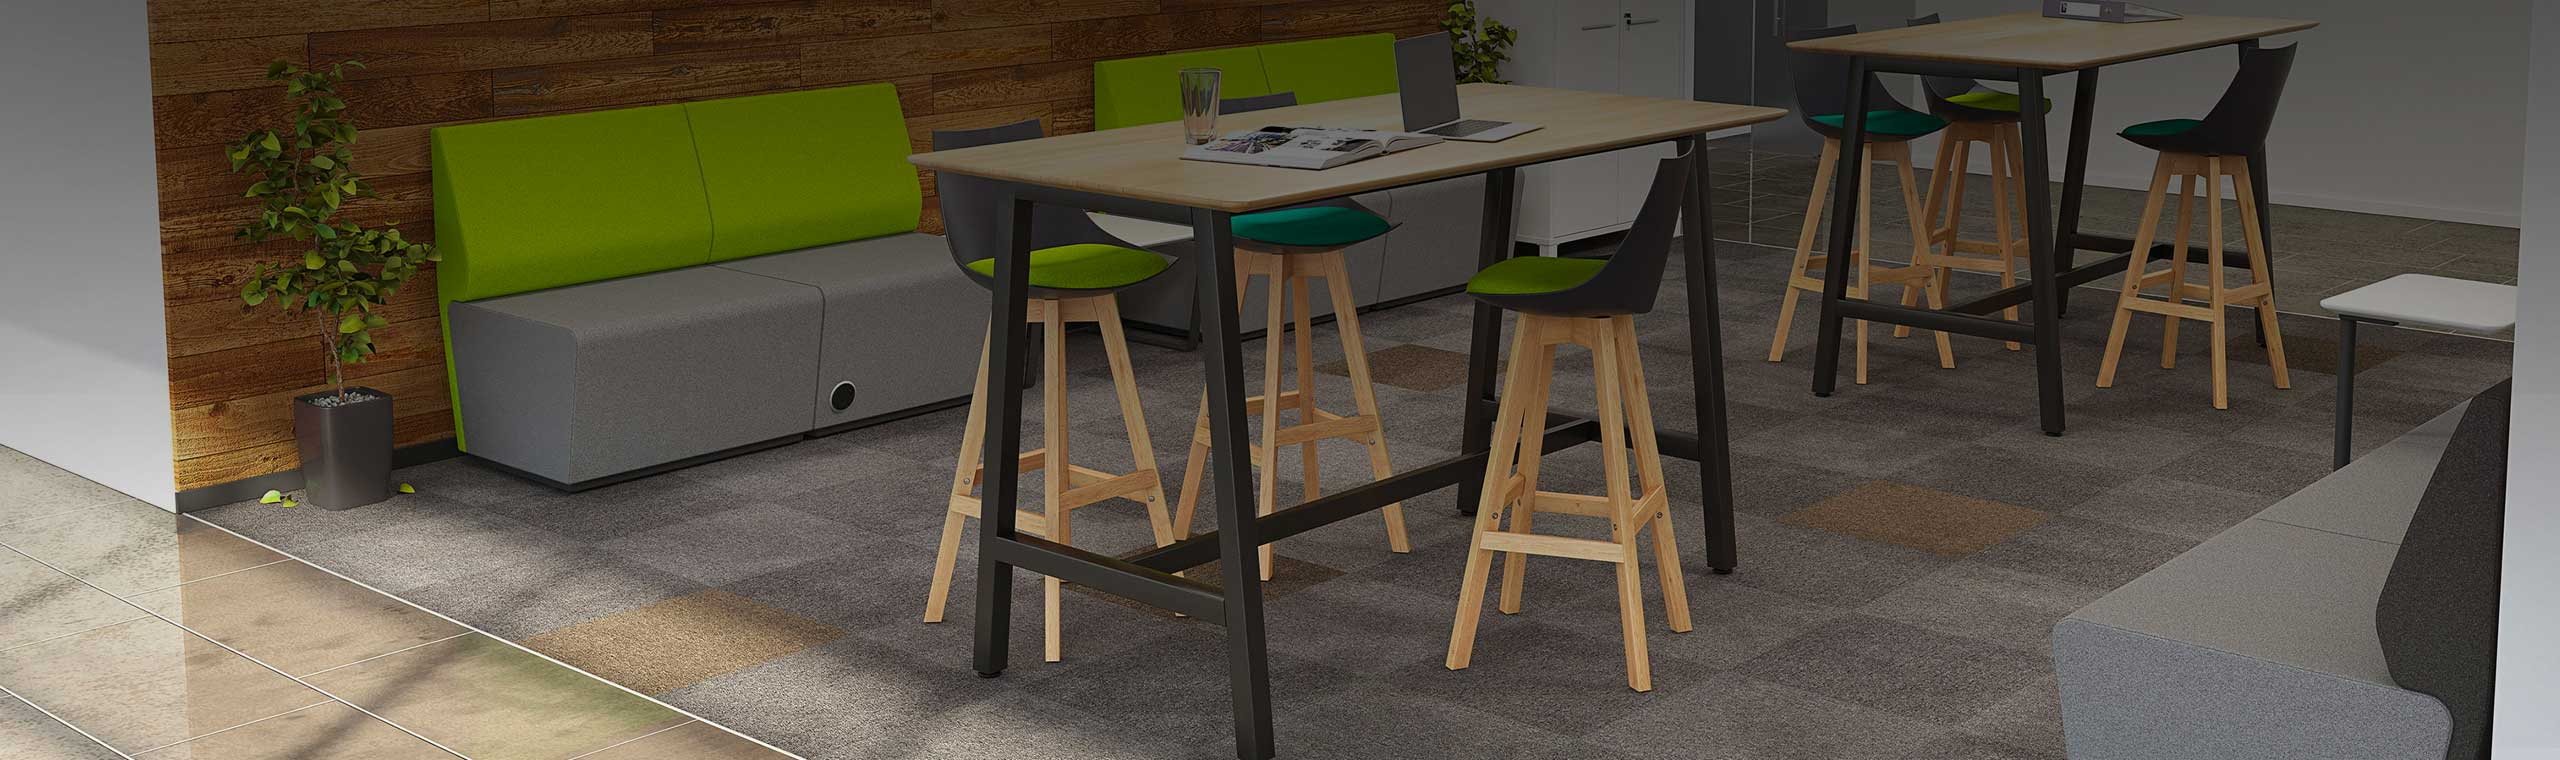 Office Breakout Furniture